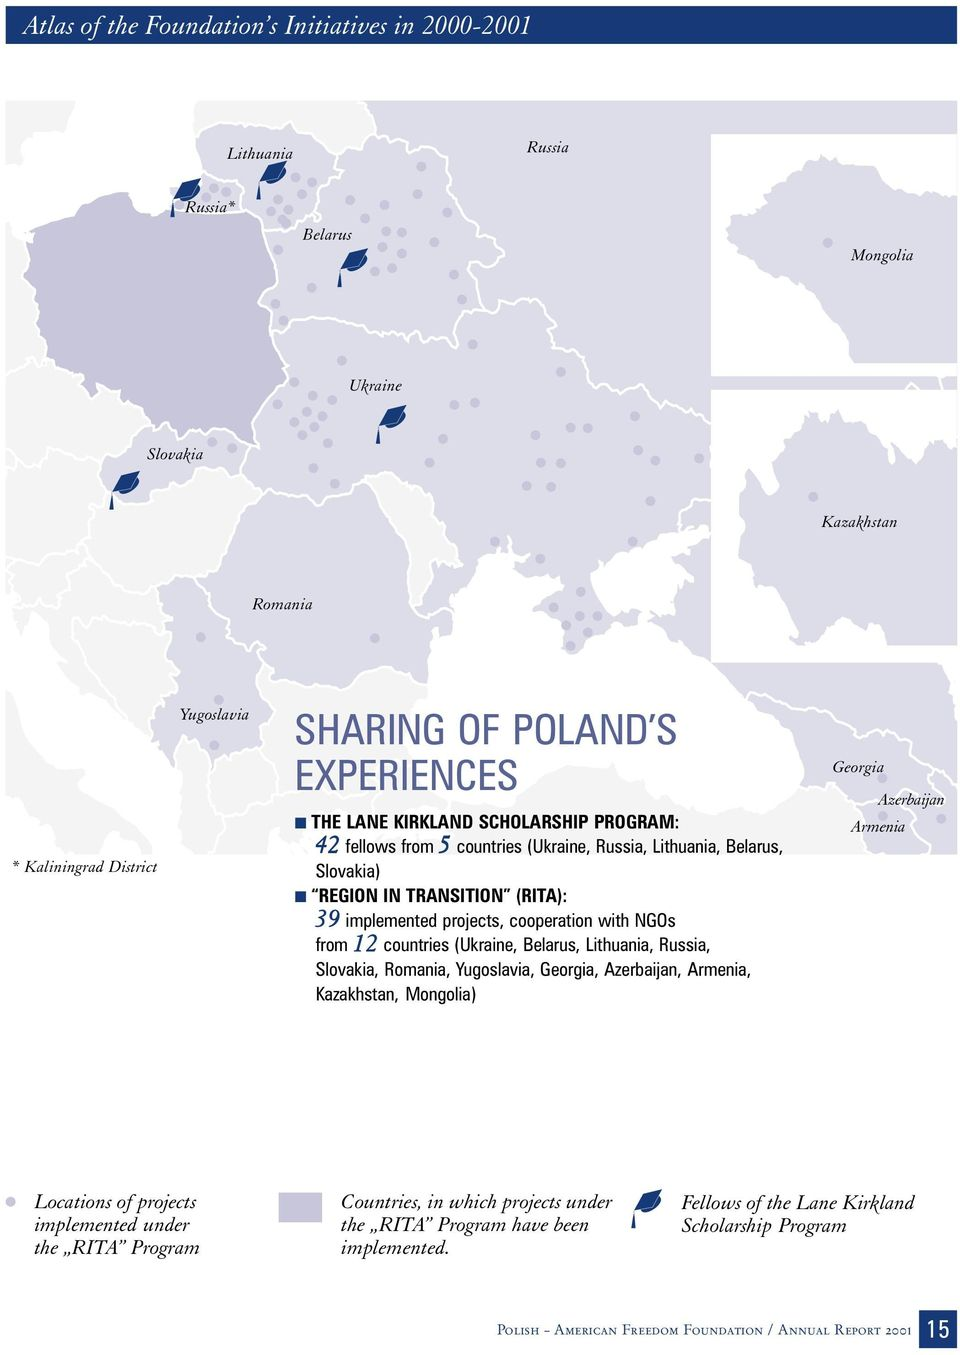 12 countries (Ukraine, Belarus, Lithuania, Russia, Slovakia, Romania, Yugoslavia, Georgia, Azerbaijan, Armenia, Kazakhstan, Mongolia) Georgia Azerbaijan Armenia Locations of projects implemented